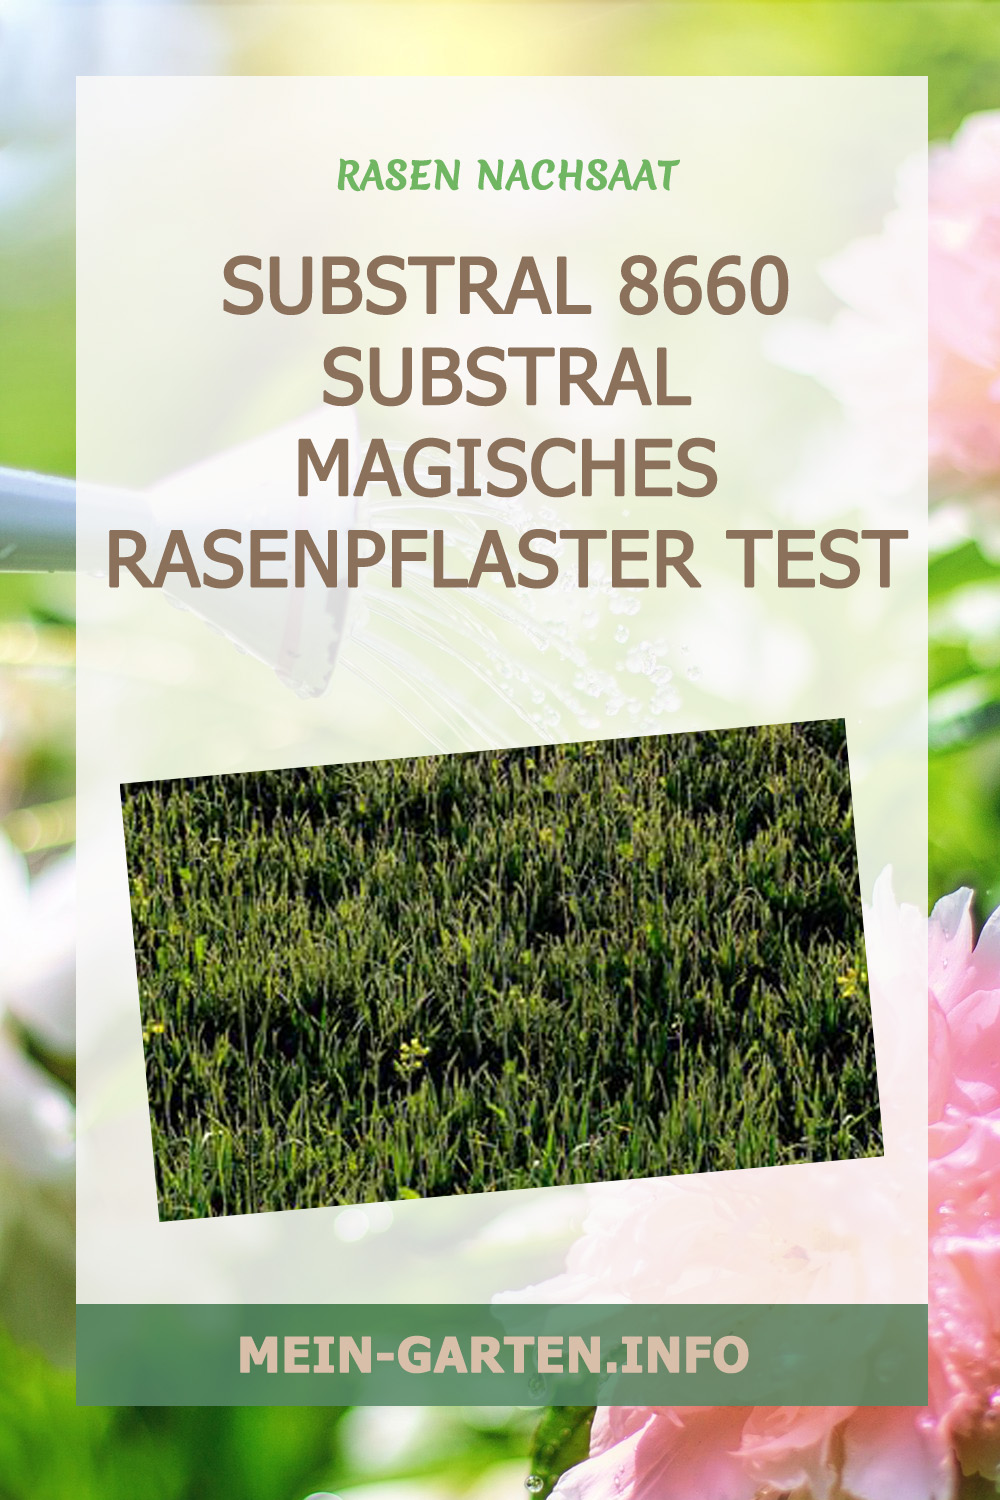 Substral 8660 Substral Magisches Rasenpflaster Test